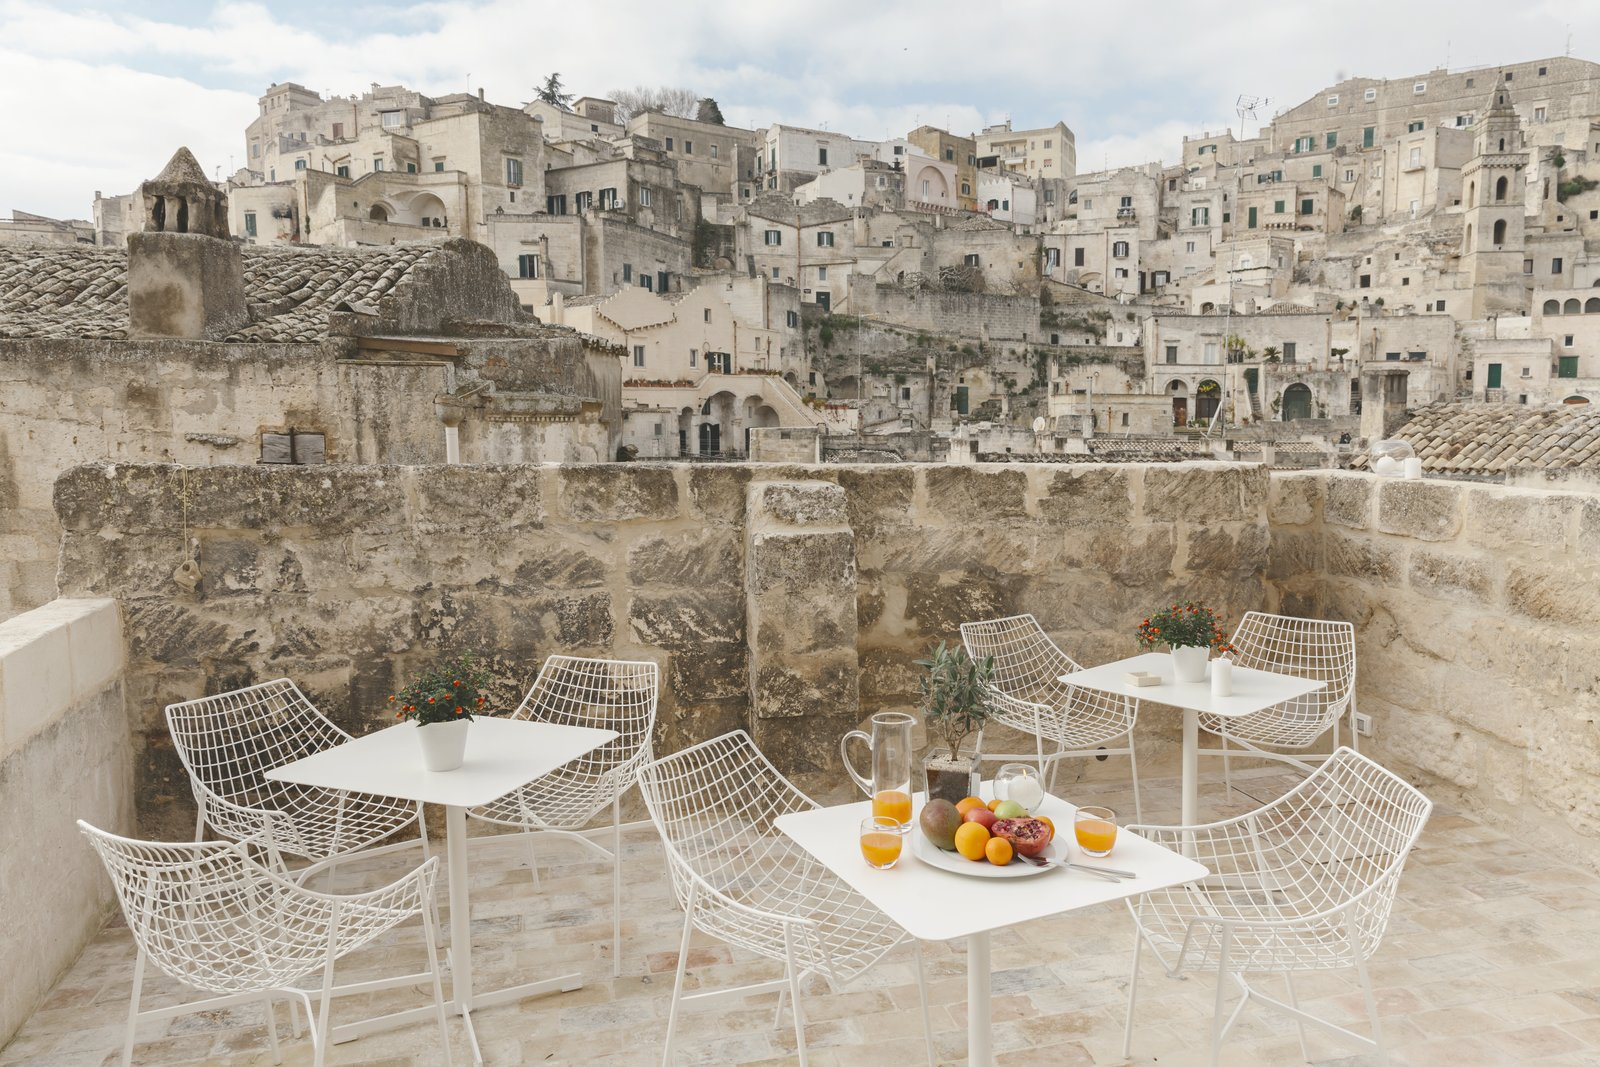 Outdoor, Small Patio, Porch, Deck, Stone Patio, Porch, Deck, Front Yard, and Horizontal Fences, Wall In some parts of the ancient city, the streets run above these subterranean cave homes.  Photos from Stay in This Extraordinary Cave Hotel in Southern Italy